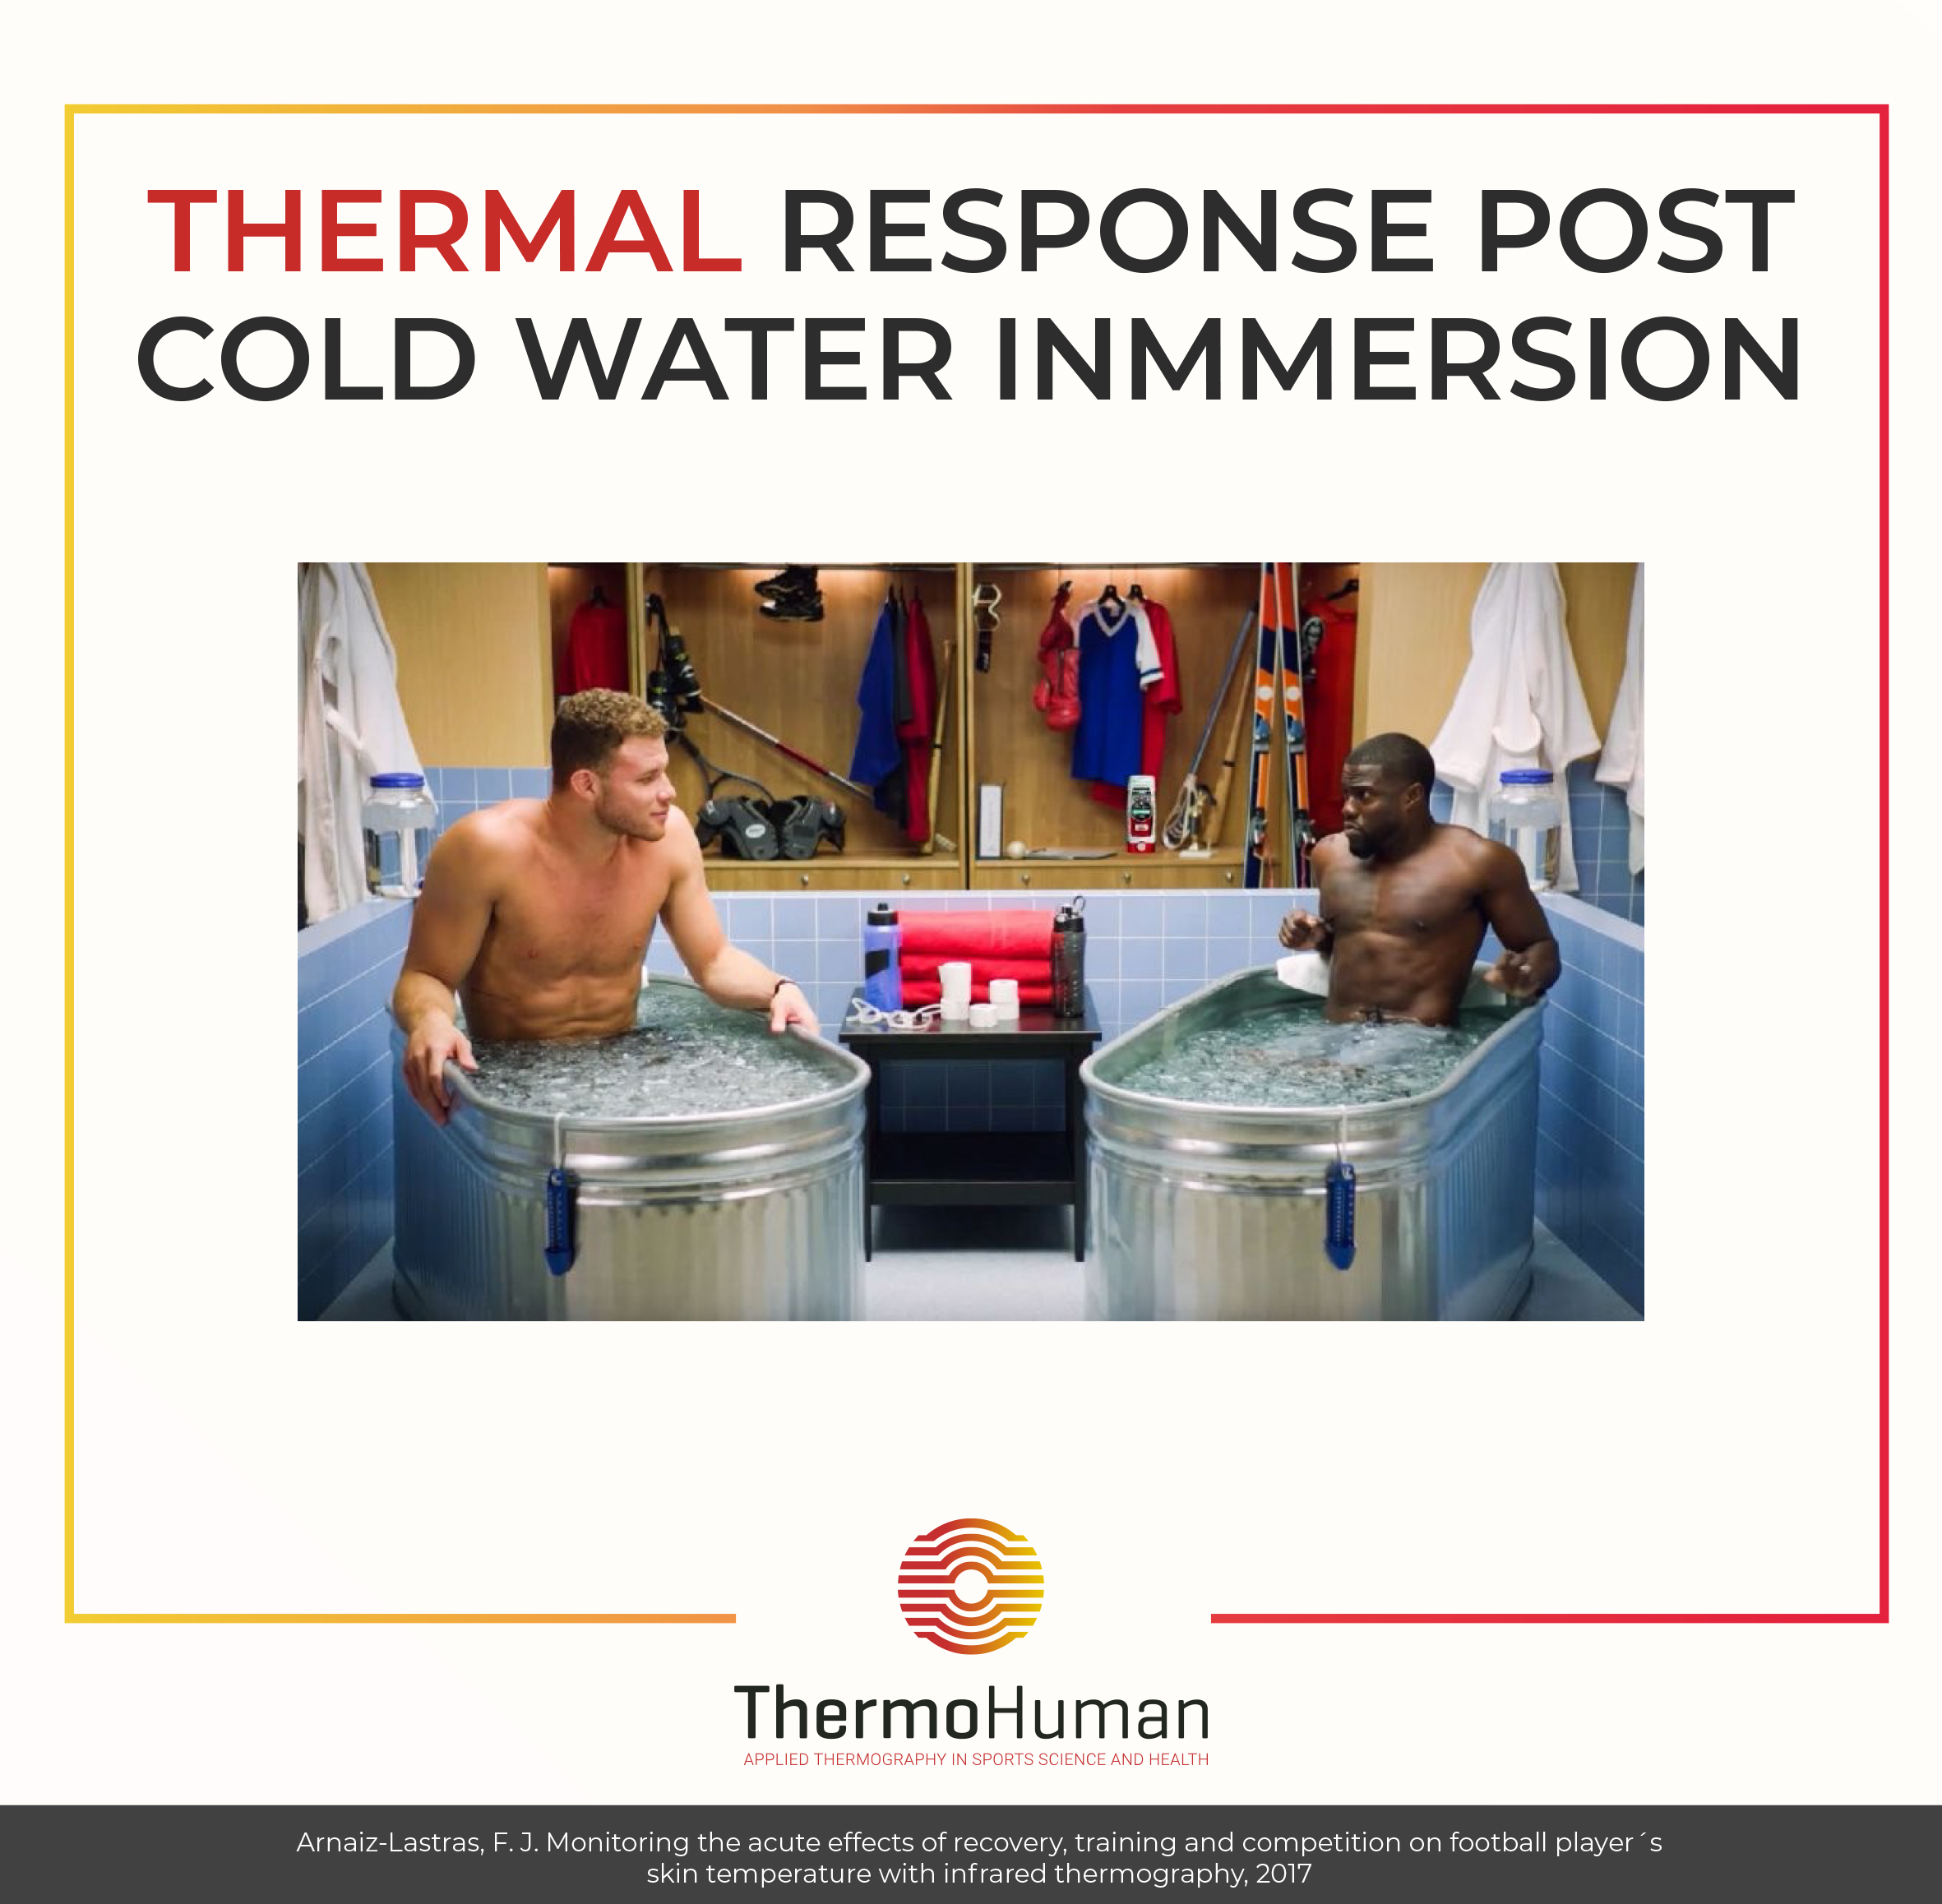 Thermal response post cold water immersion